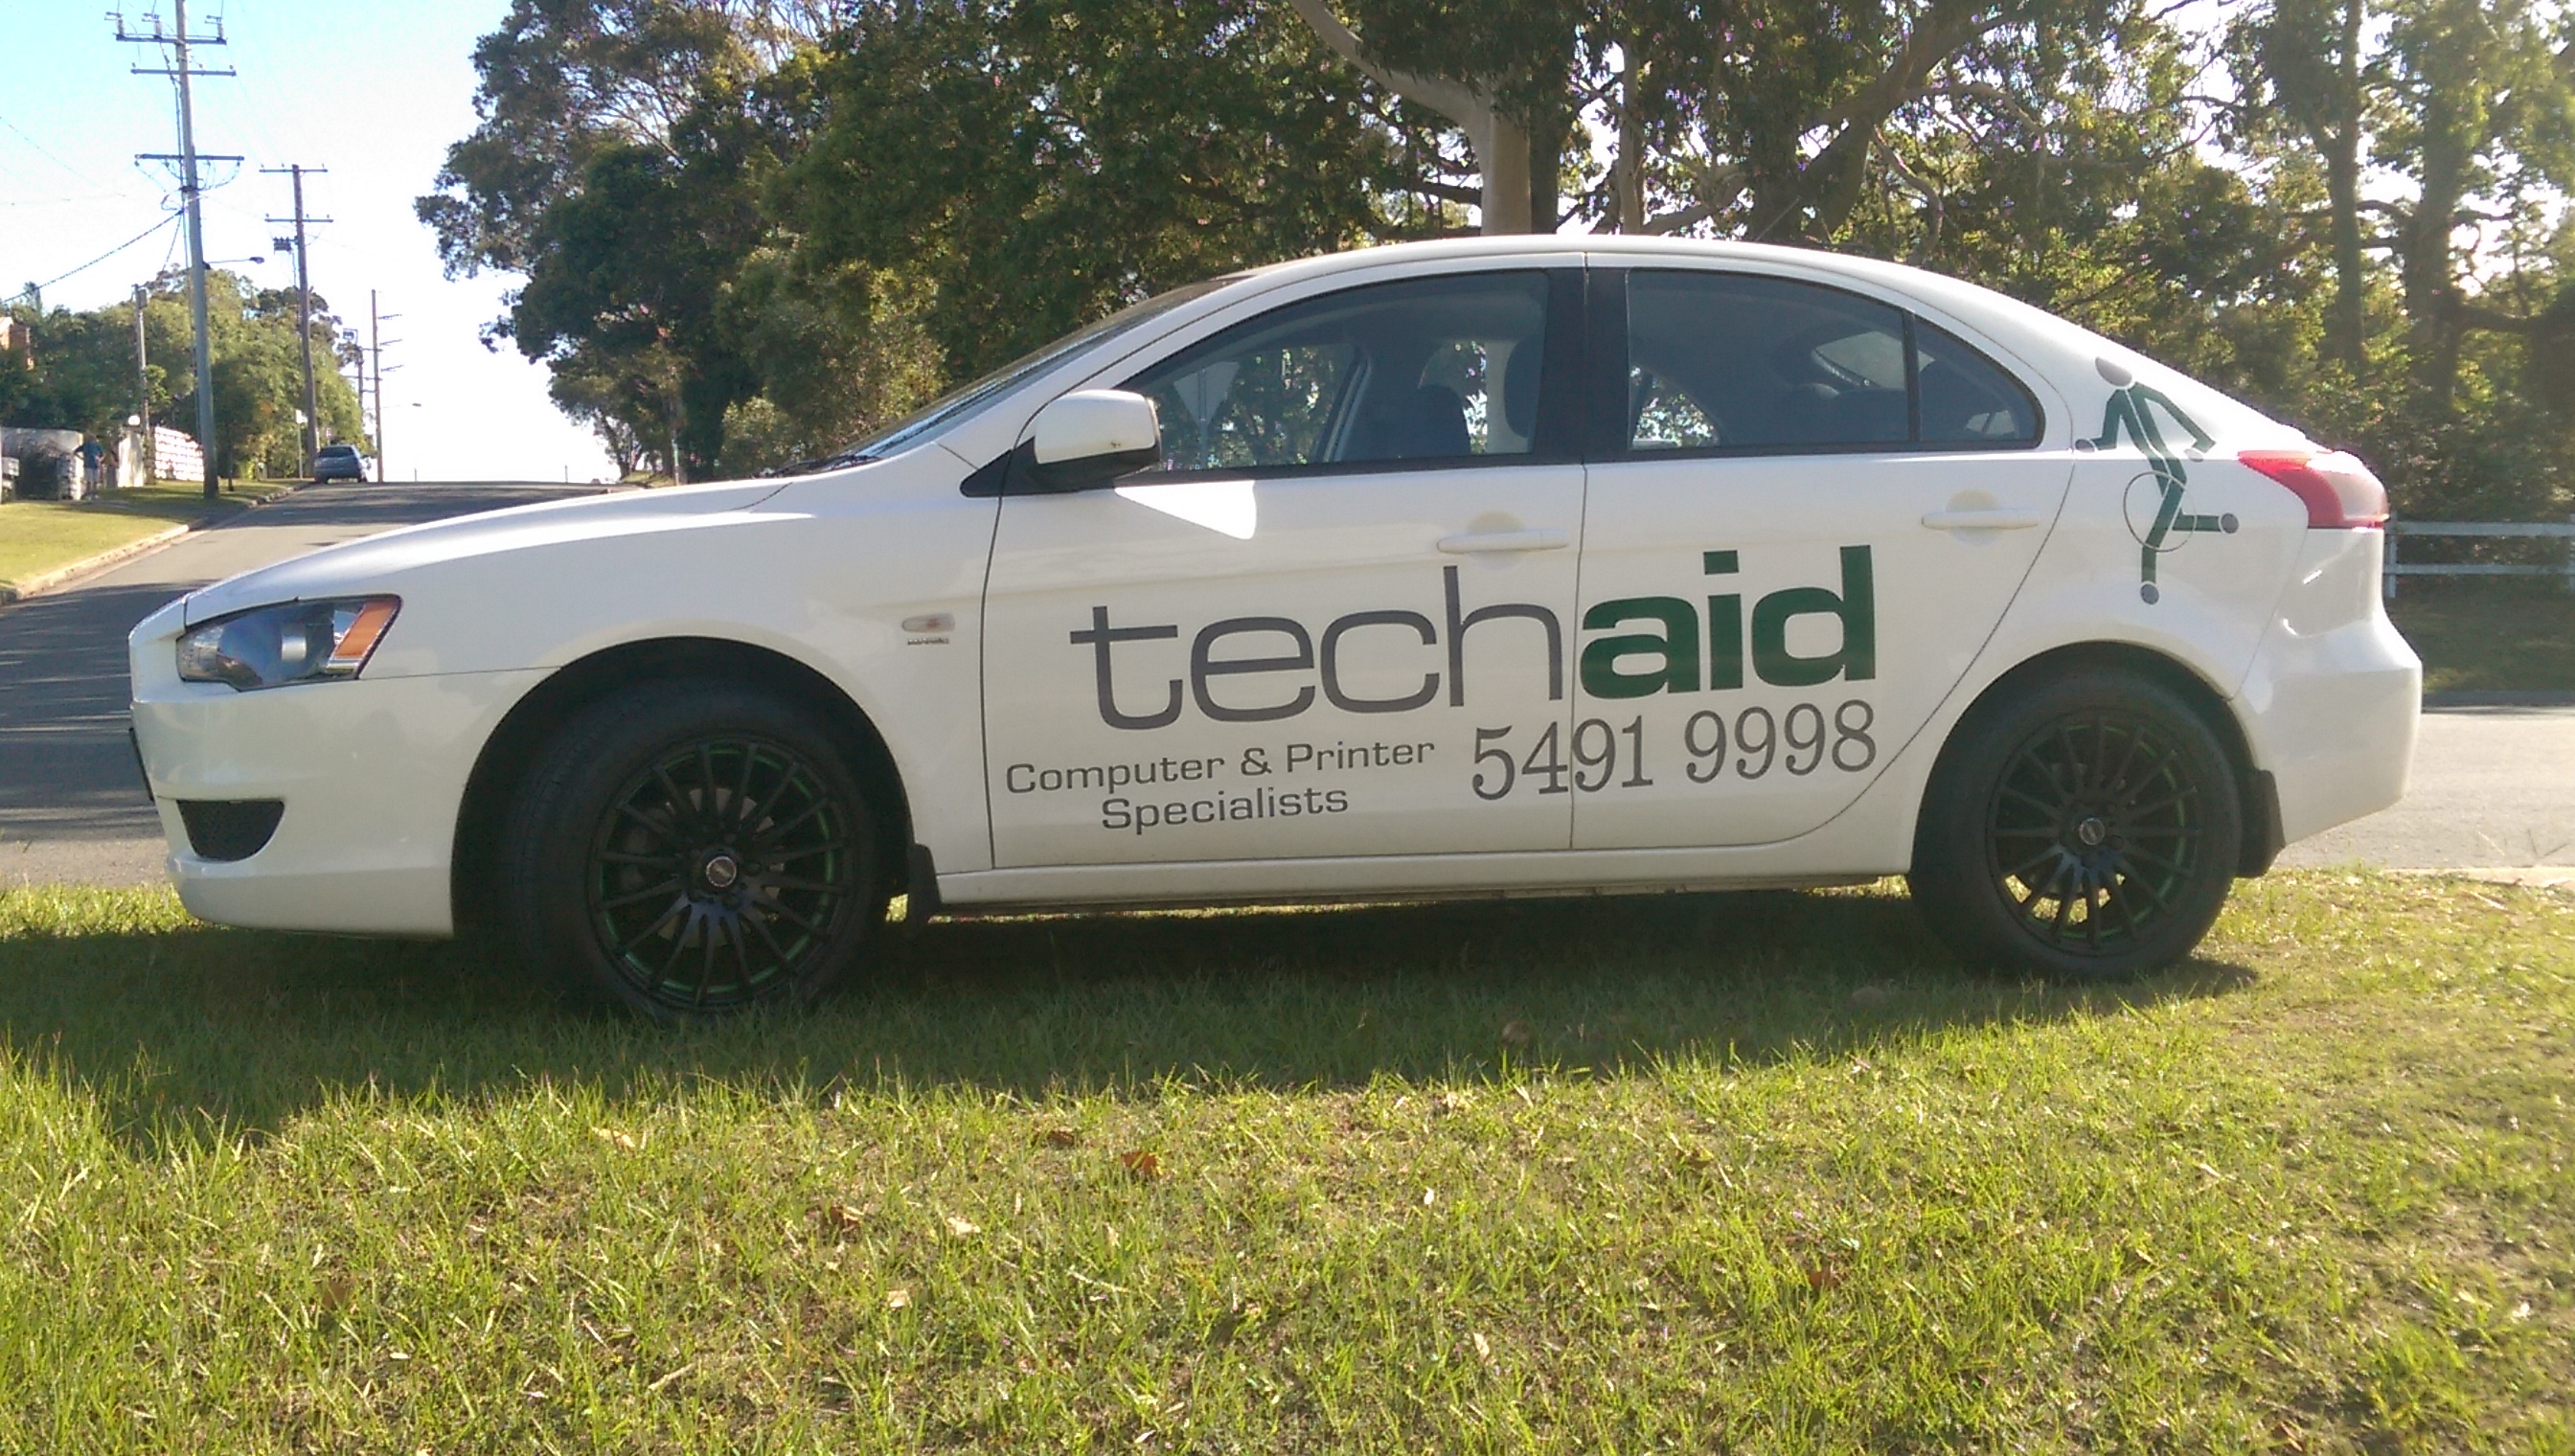 Computer Repair and Support in Currimundi, callouts techaid